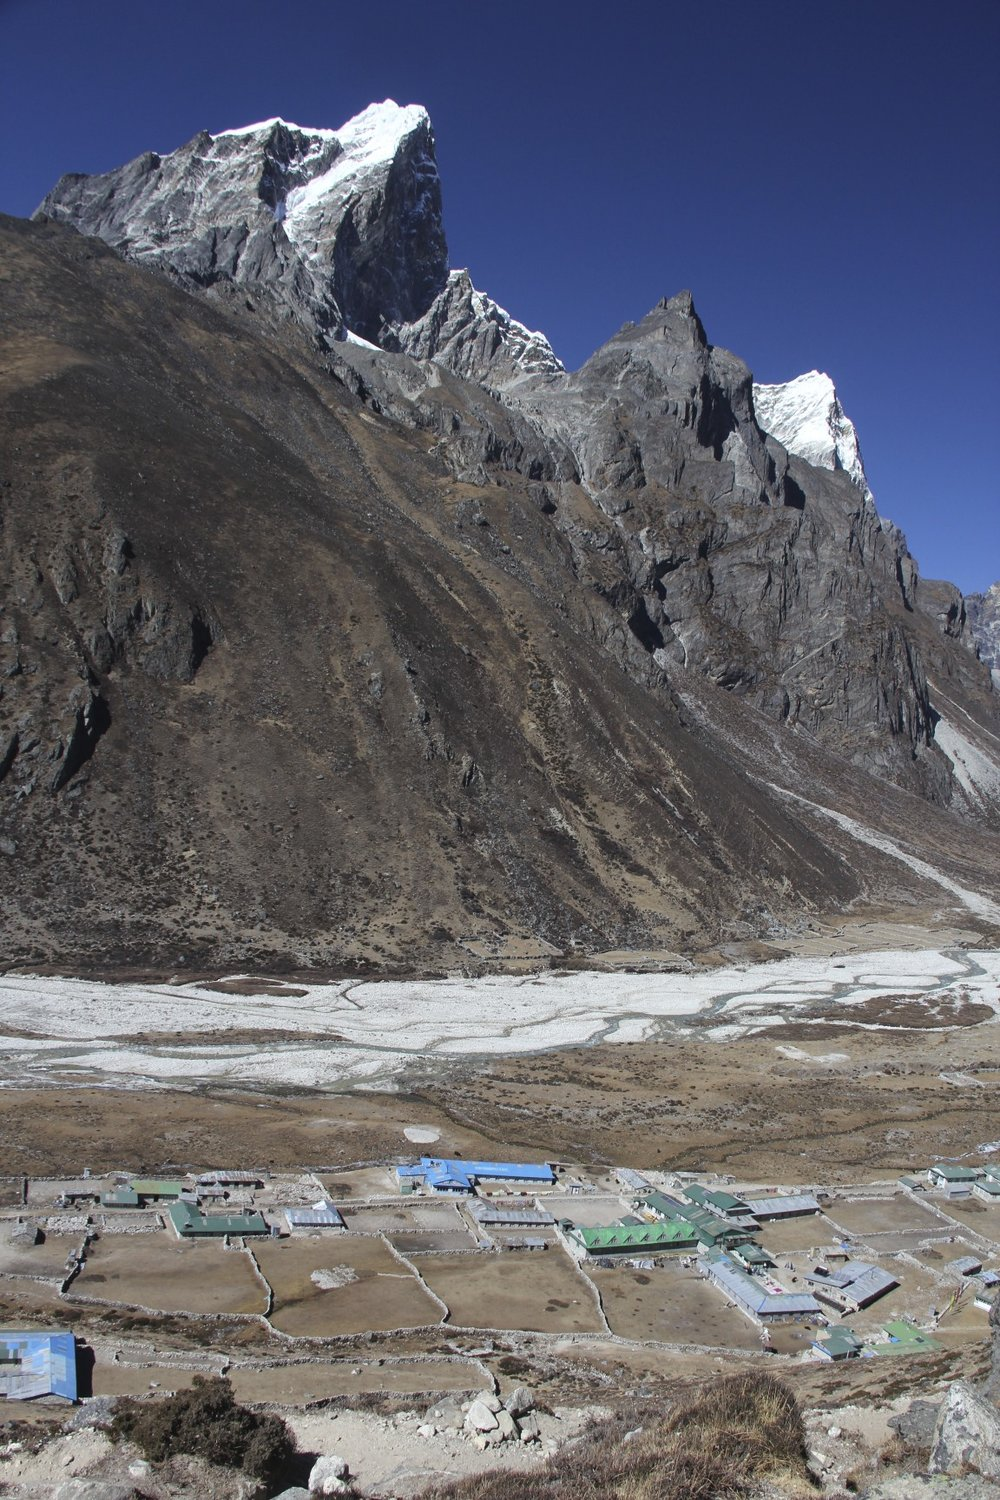 Pheriche village and Mt. Cholatse